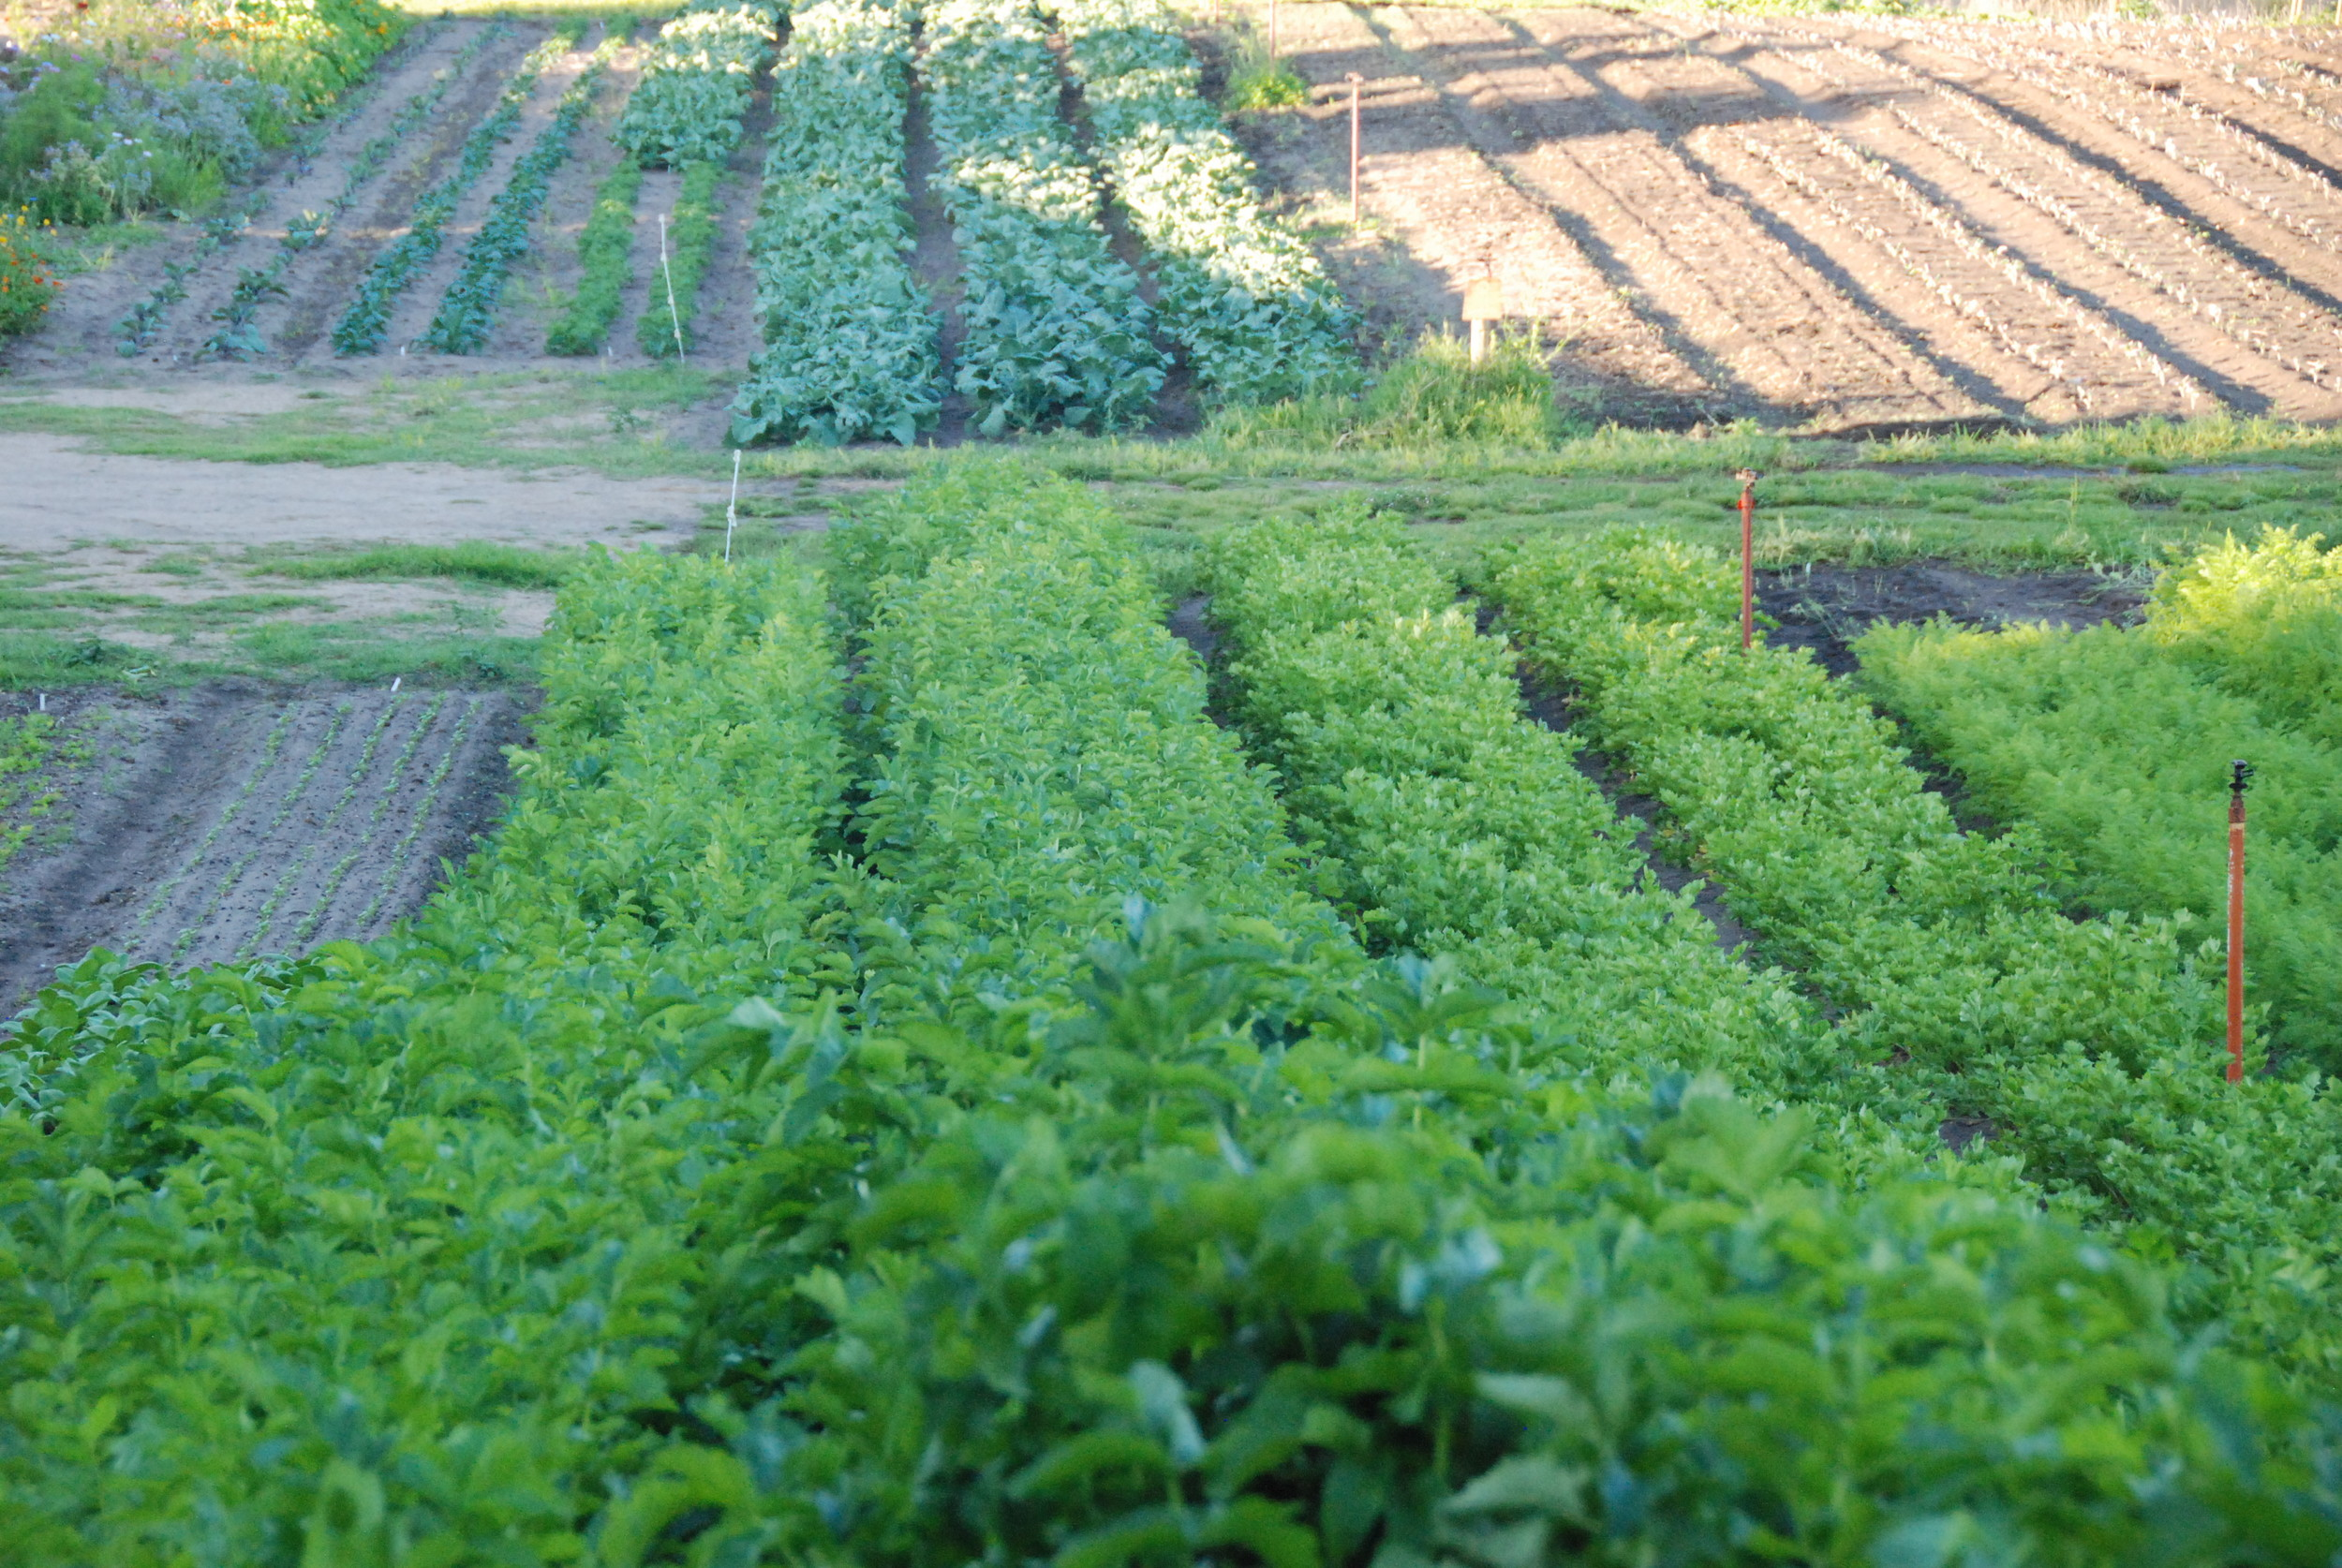 Autumn brassica plantings in the background, carrots, parsnips and celeriac in the foreground